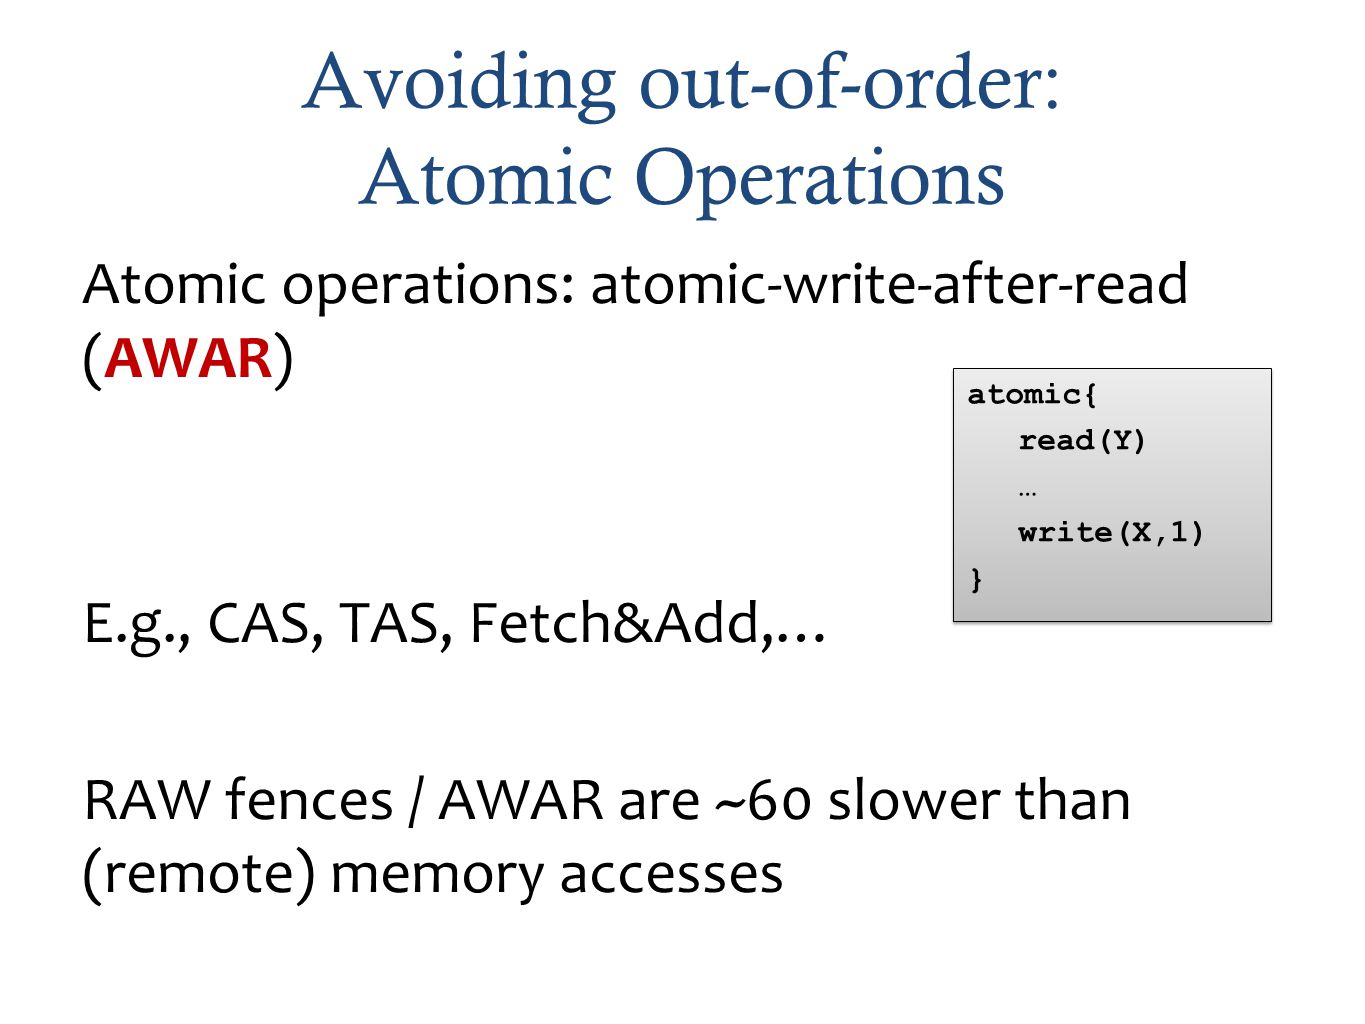 Avoiding out-of-order: Atomic Operations Atomic operations: atomic-write-after-read (AWAR) E.g., CAS, TAS, Fetch&Add,… RAW fences / AWAR are ~60 slower than (remote) memory accesses atomic{ read(Y) … write(X,1) } atomic{ read(Y) … write(X,1) }